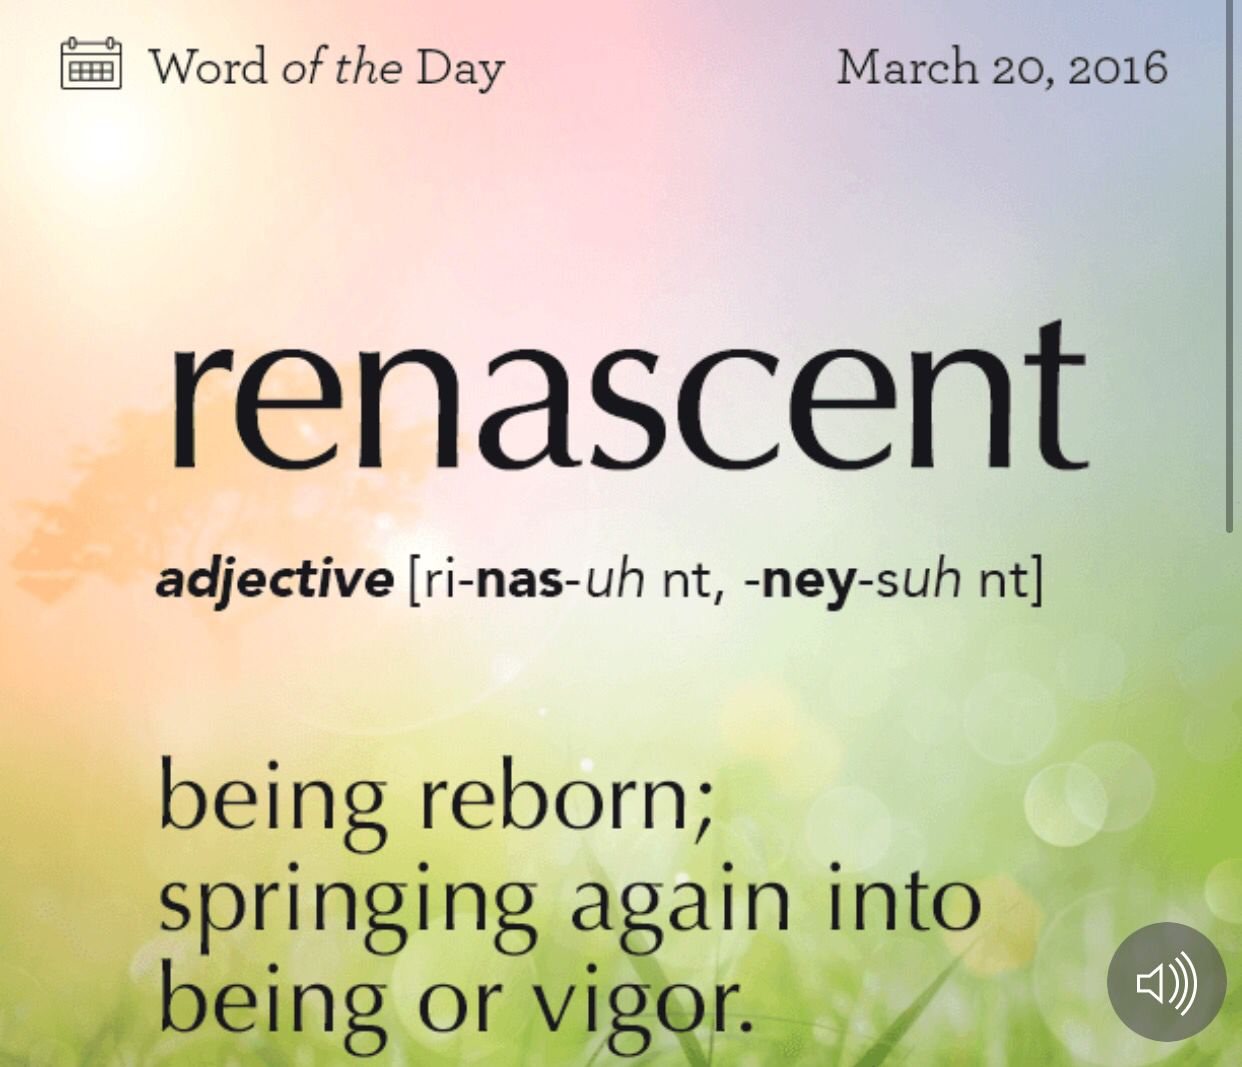 Word Of The Day For Sunday